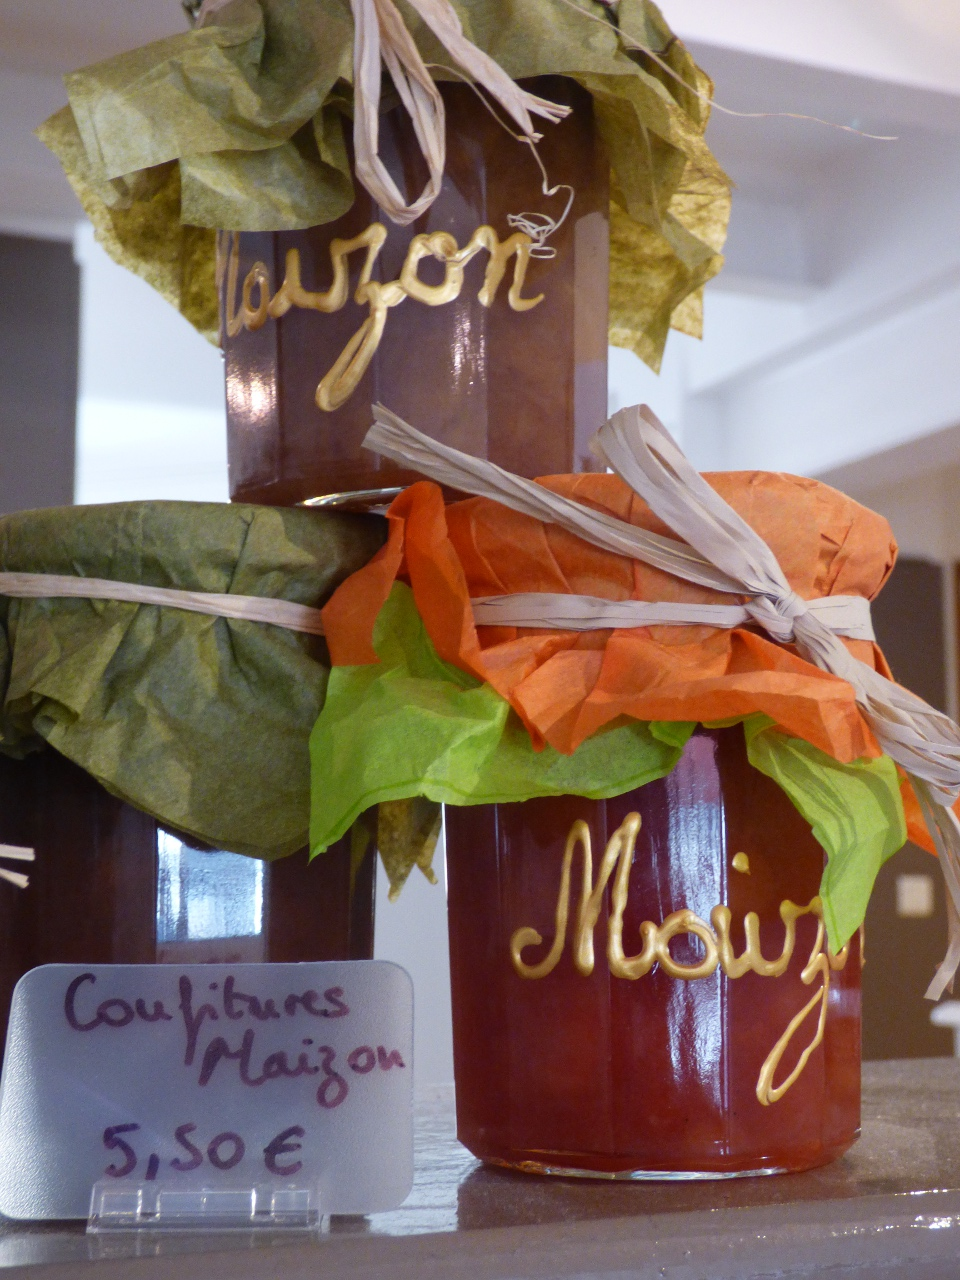 confiture_maizon